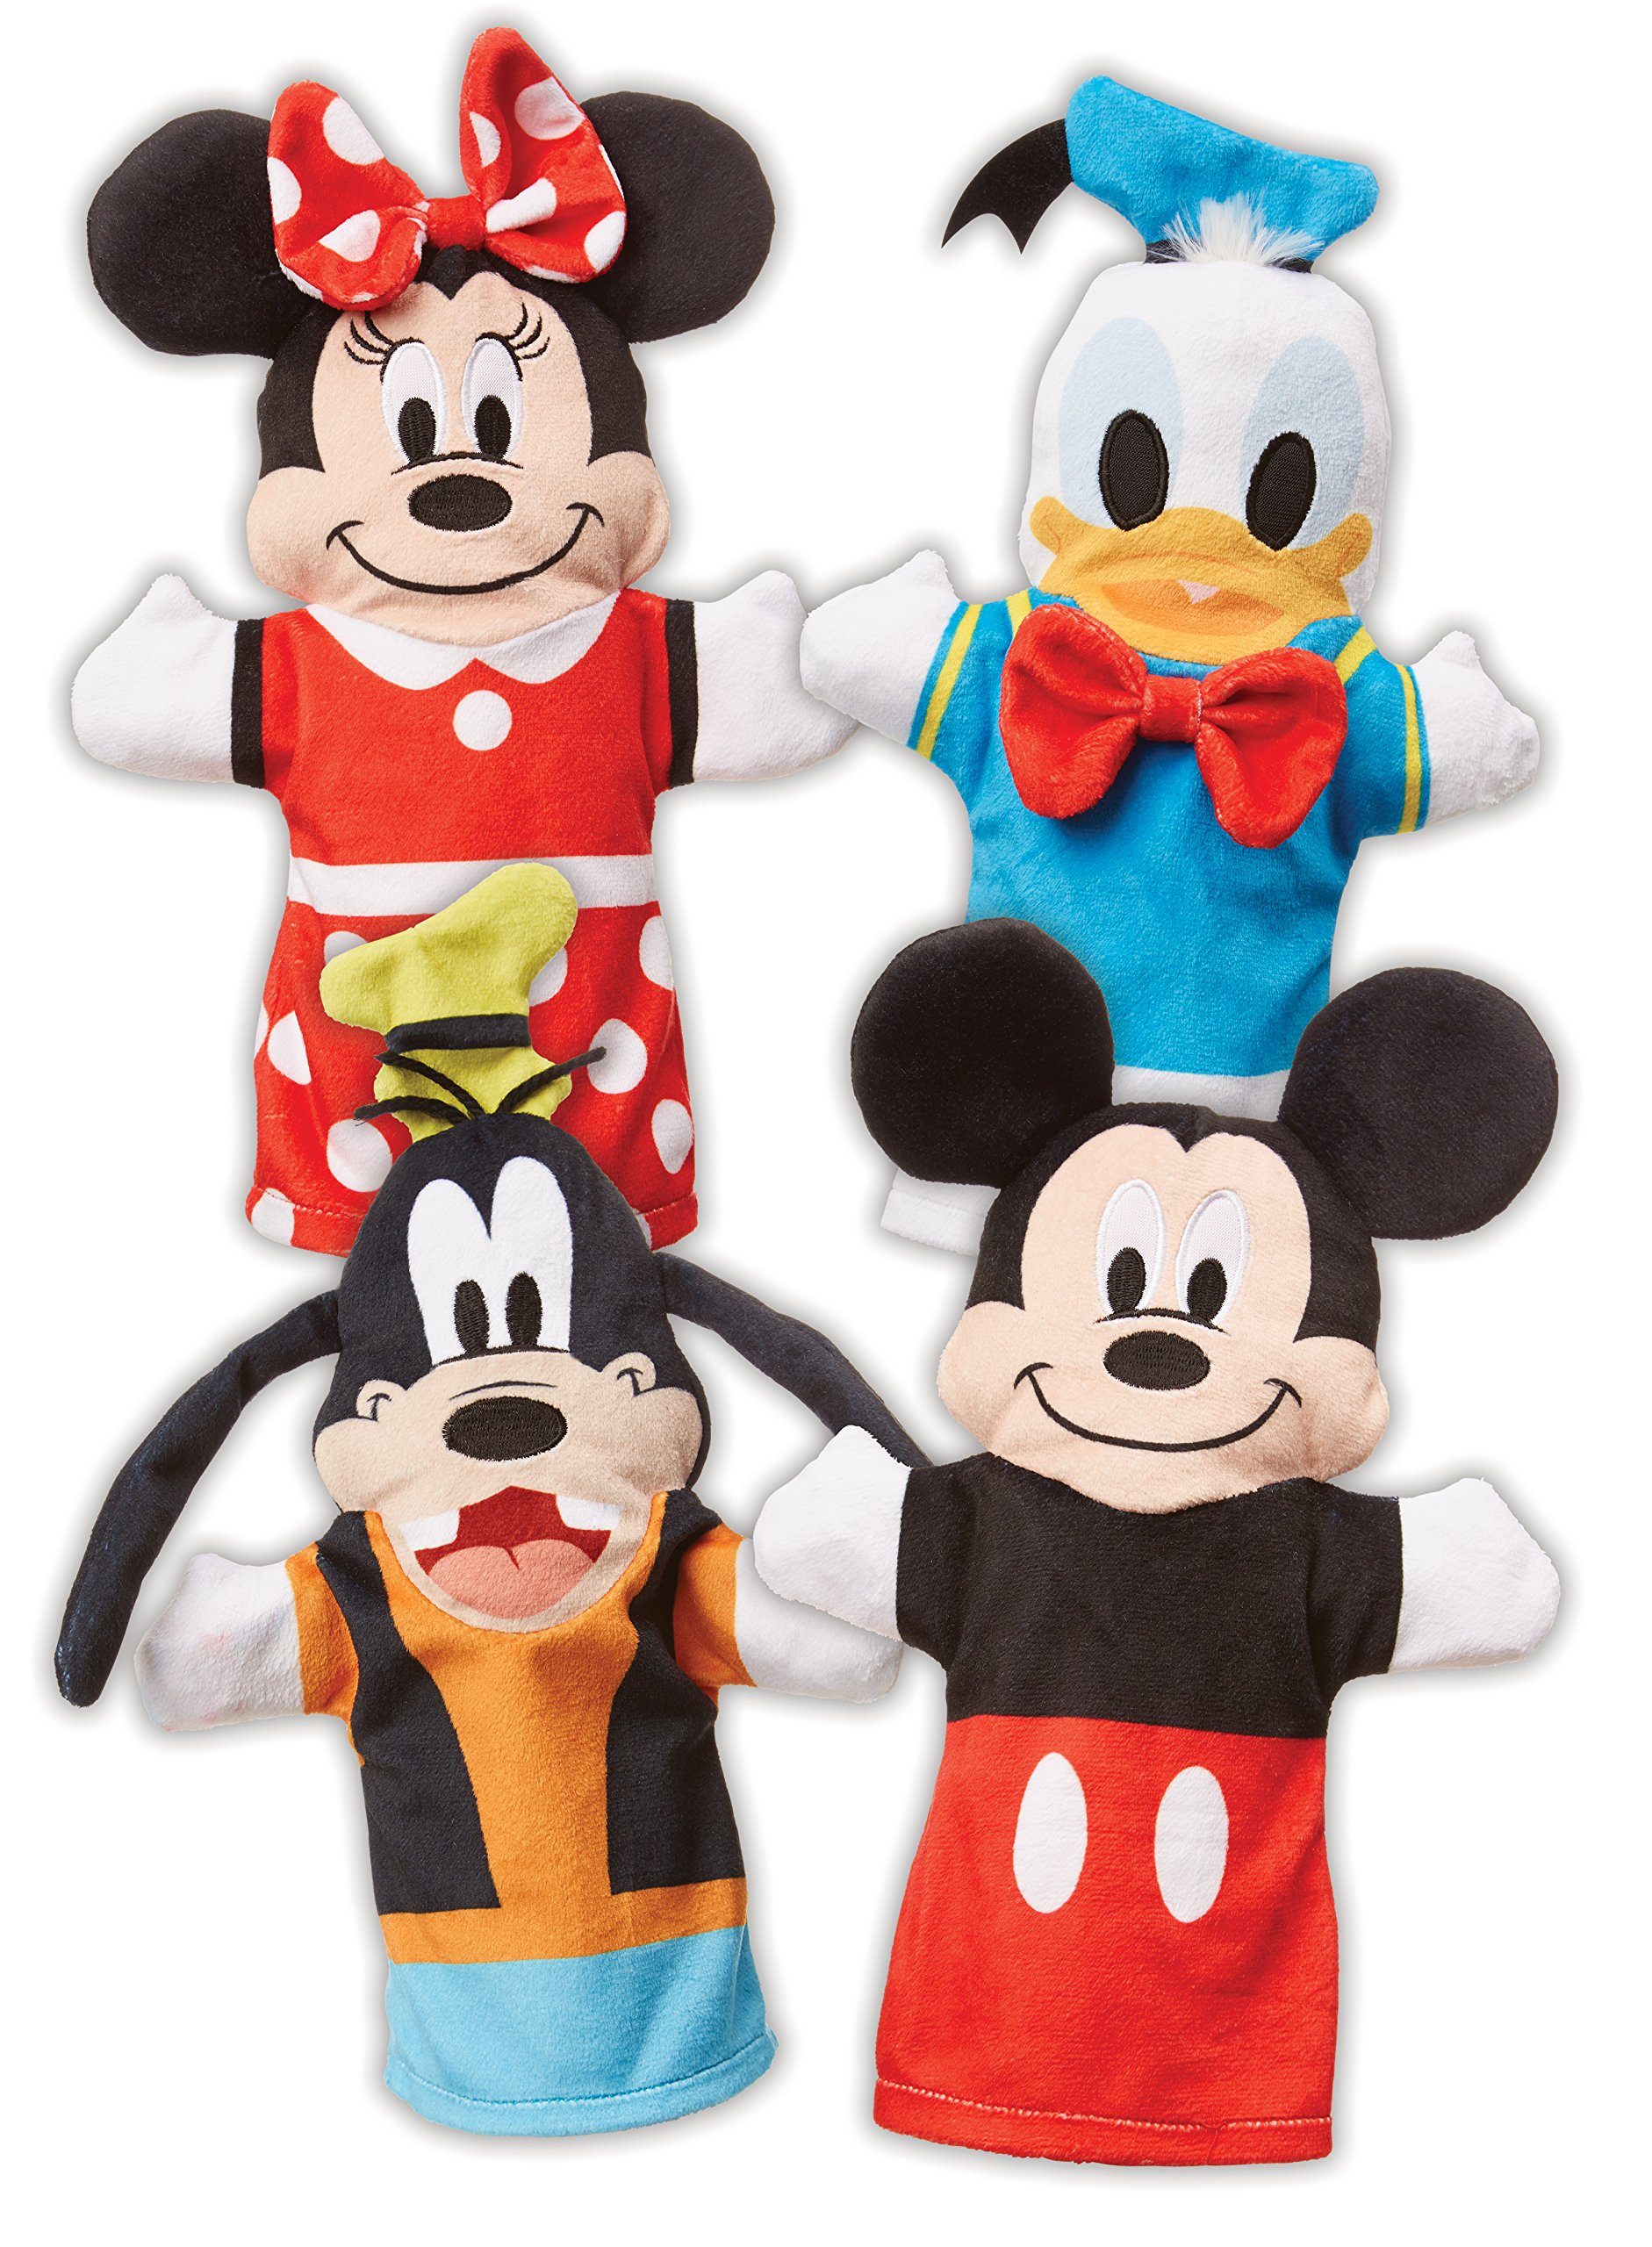 "Melissa & Doug Mickey Mouse & Friends Hand Puppets; Puppet Sets; Mickey, Minnie, Donald, and Goofy; Soft Plush Material; Set of 4; 9.5"" H x 14.2"" W x 2.1"" L by Melissa & Doug (Image #1)"